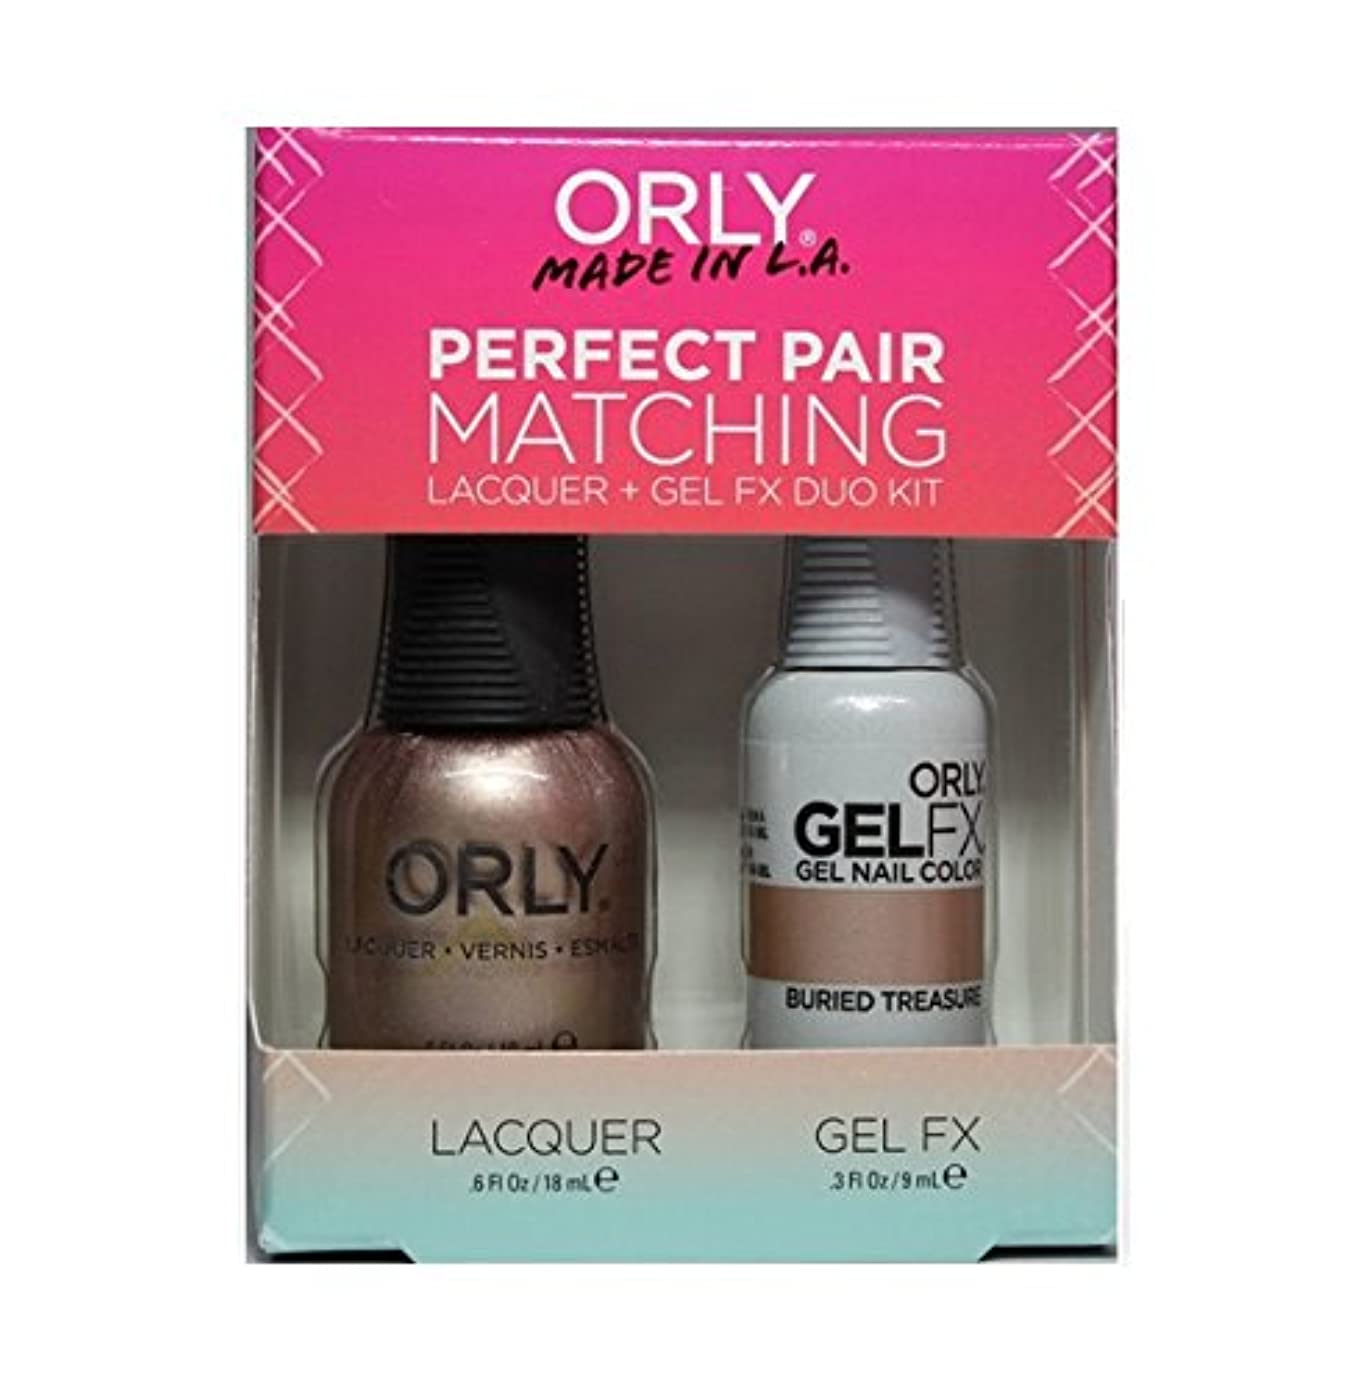 メッシュ九時四十五分クリケットOrly - Perfect Pair Matching Lacquer+Gel FX Kit - Buried Treasure - 0.6 oz / 0.3 oz